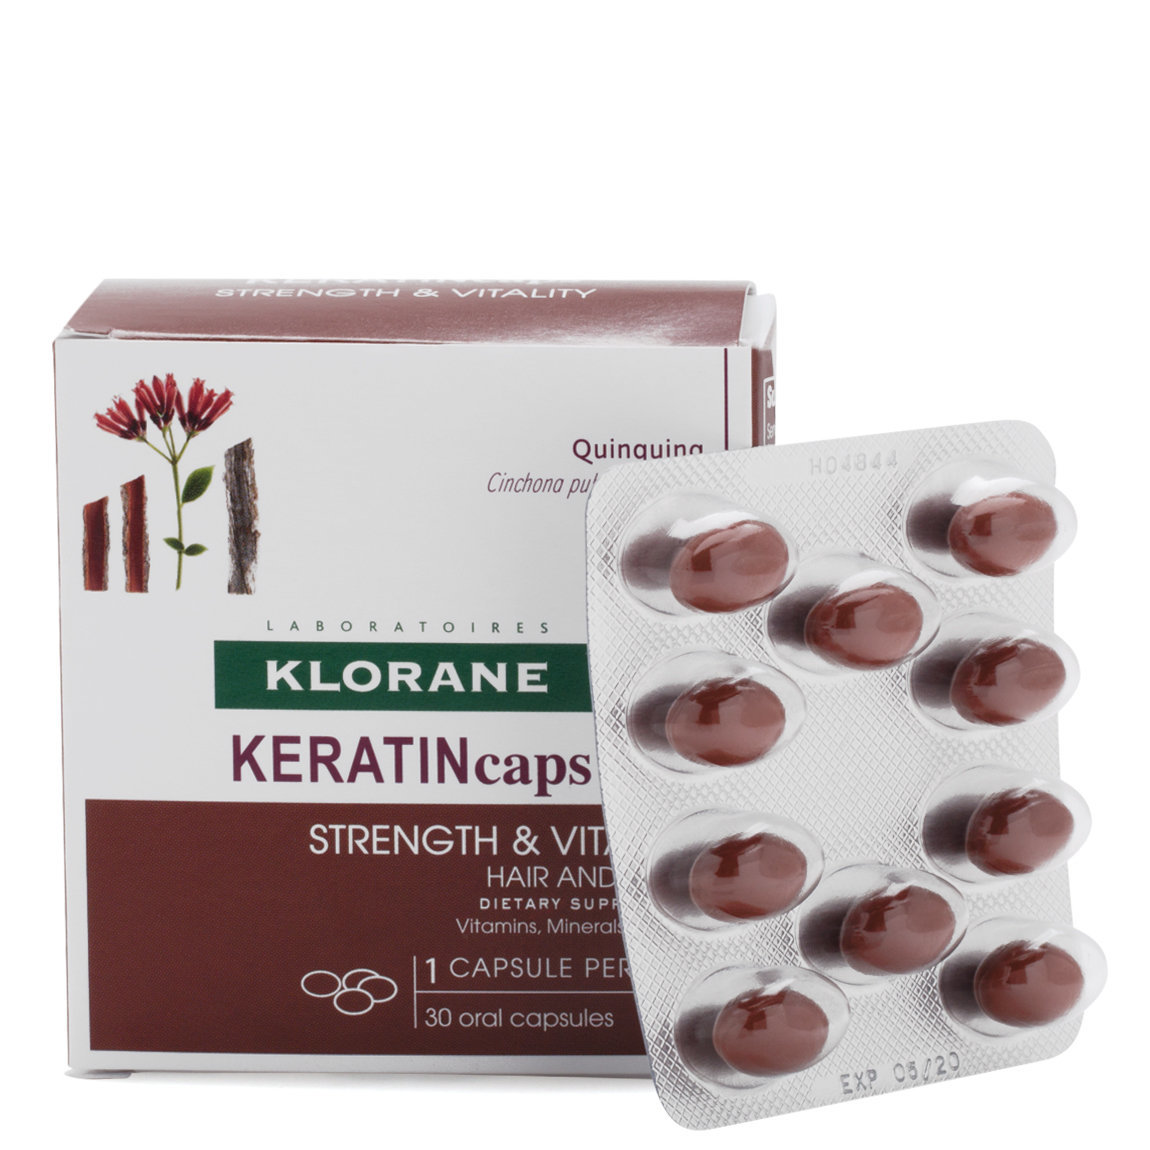 Klorane Keratin Caps Hair and Nails Dietary Supplements 30 Capsules ...